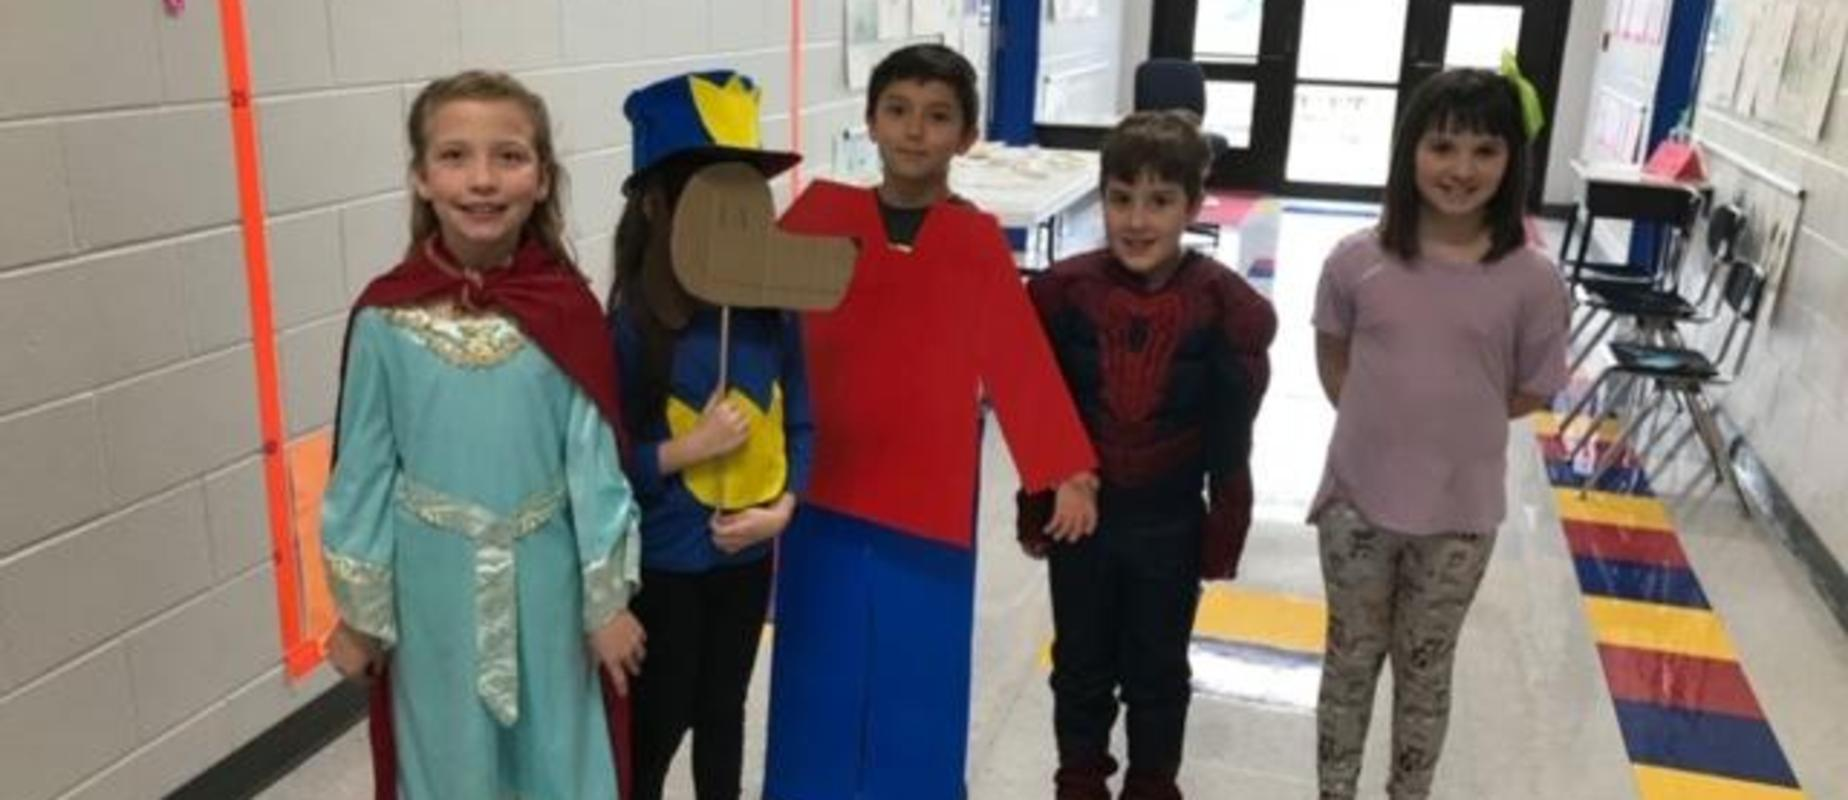 Students as story book characters